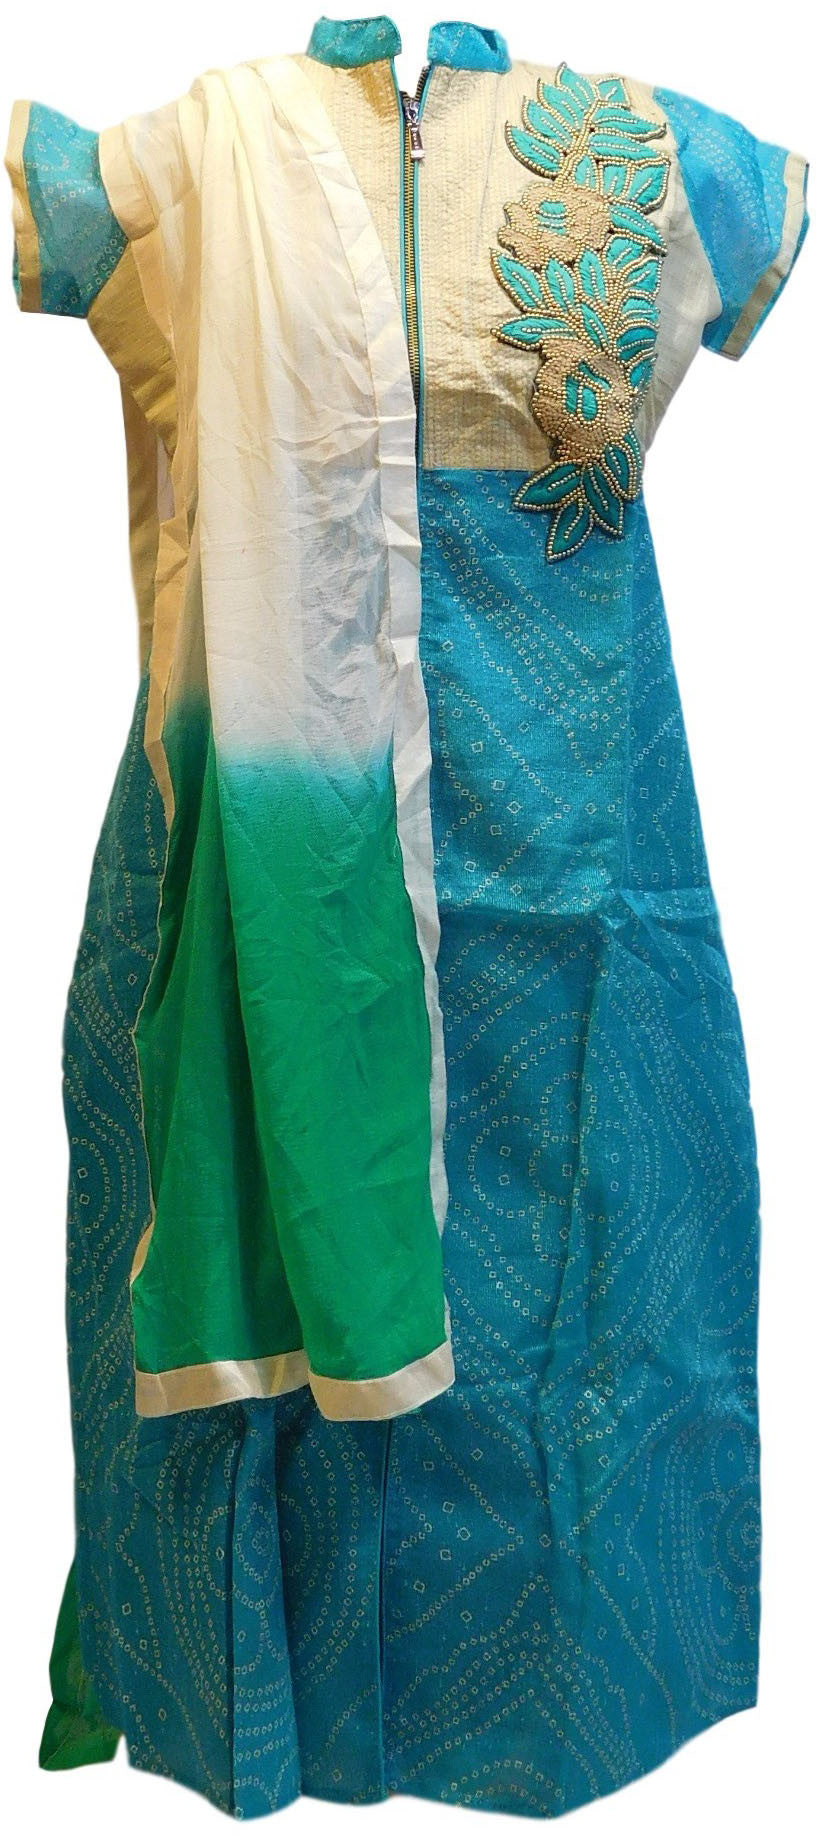 Turquoise Designer Cotton (Supernet) Kurti With Dupatta